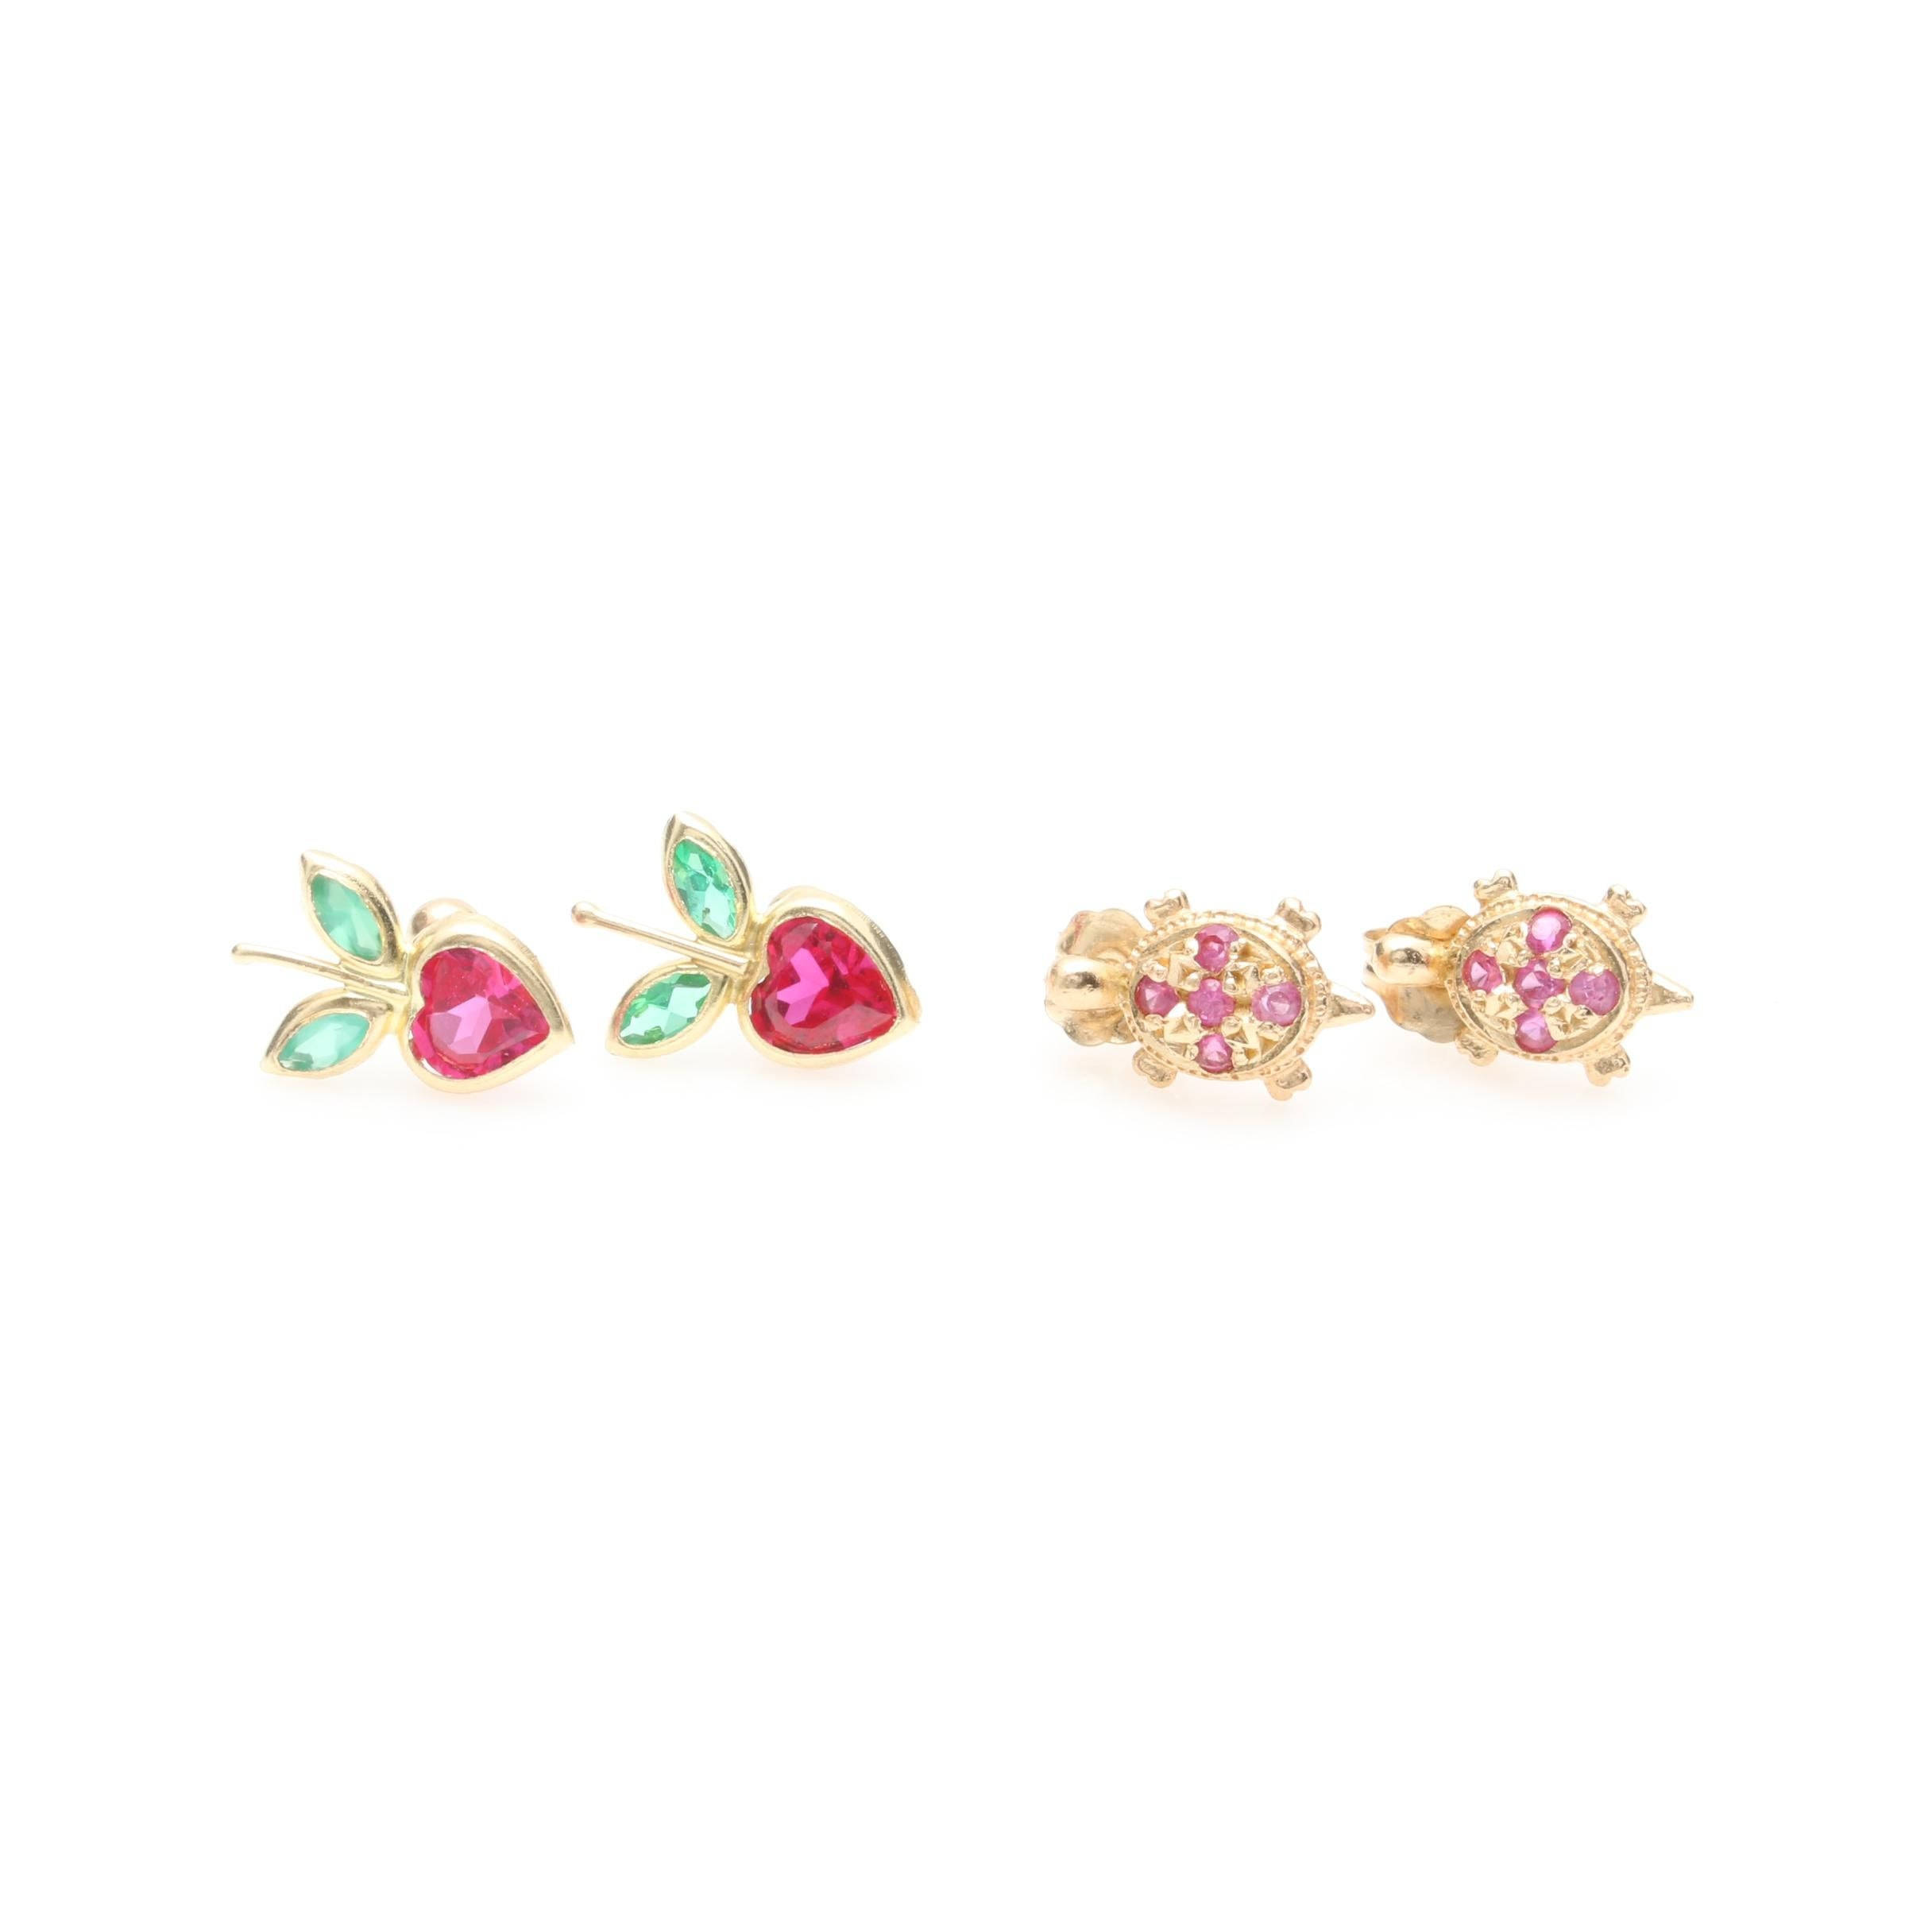 10K and 14K Yellow Gold Synthetic Ruby and Chalcedony Stud Earring Selection